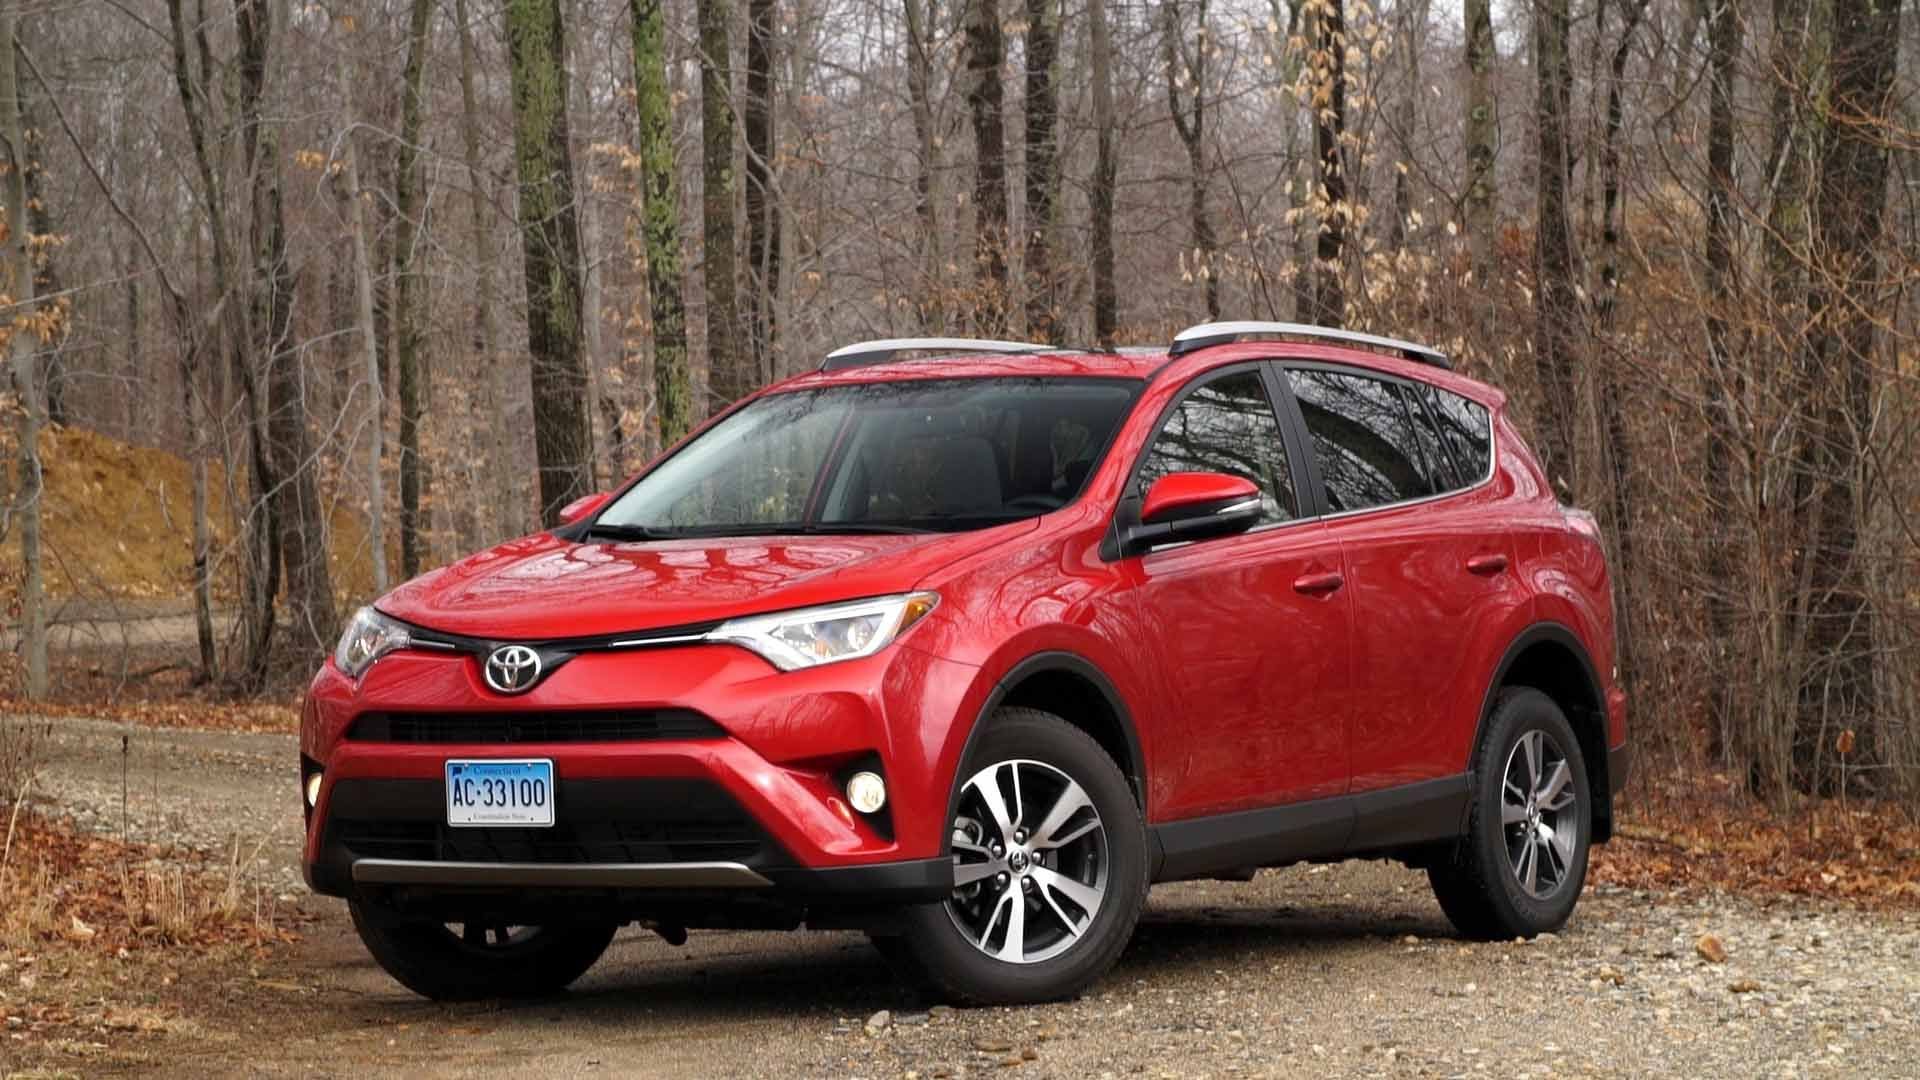 The 2016 Toyota Rav4 Hybrid Is Most Fuel Efficient Non Plug In Suv That Consumer Reports Has Tested